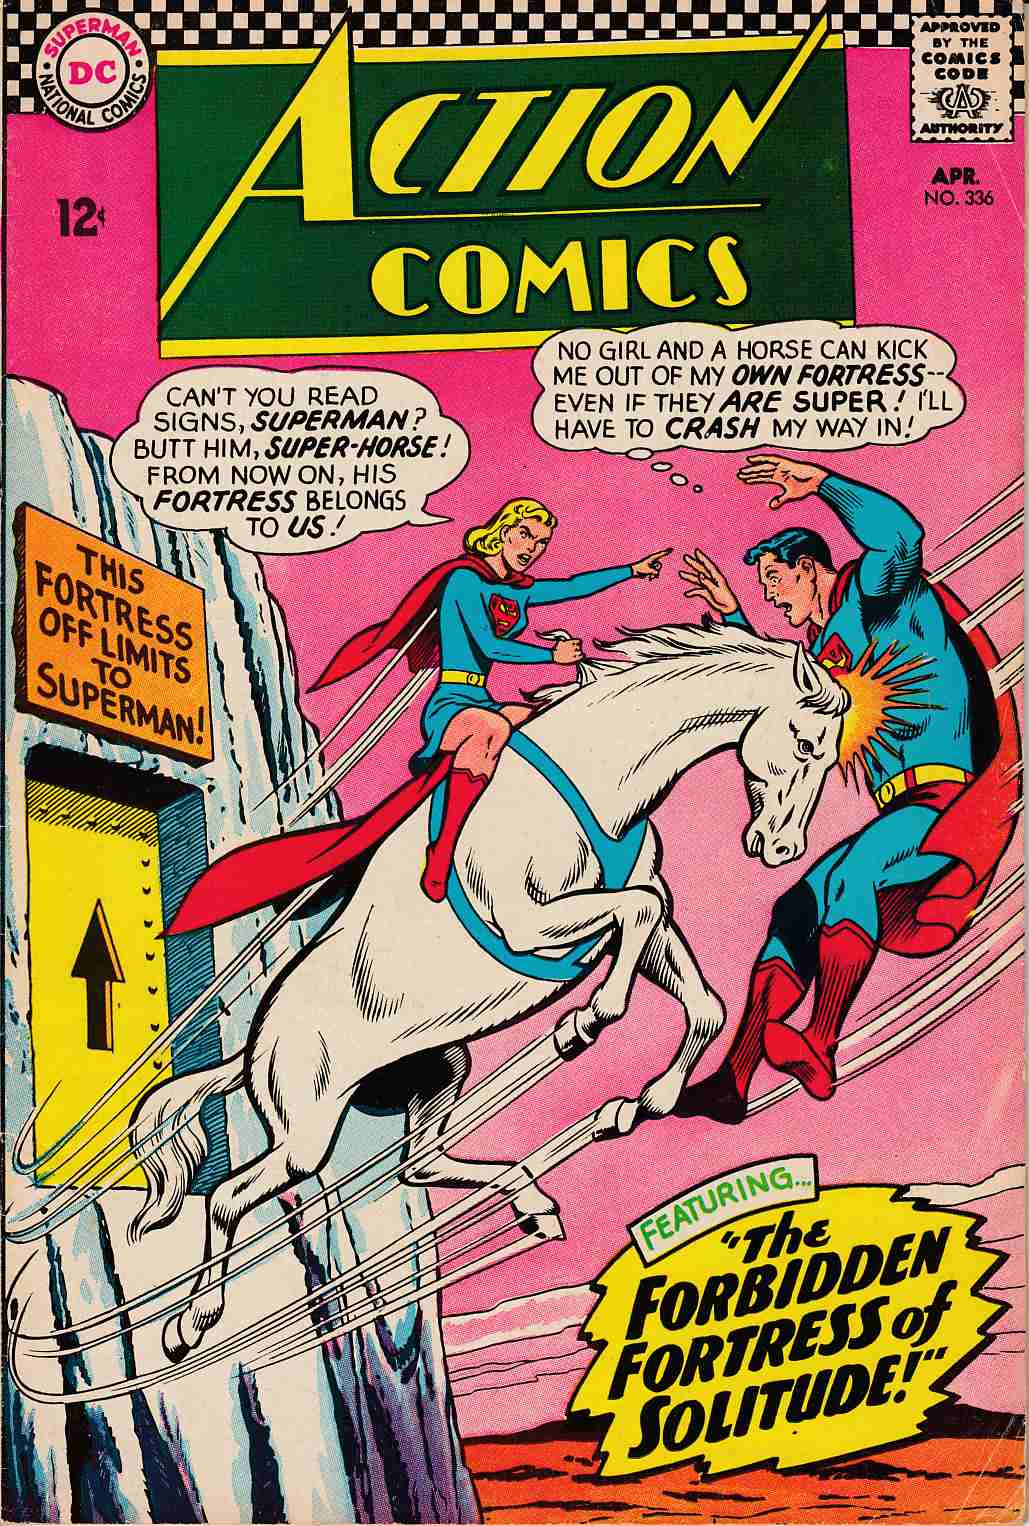 Action Comics #336 Fine Minus (5.5) [DC Comic] THUMBNAIL